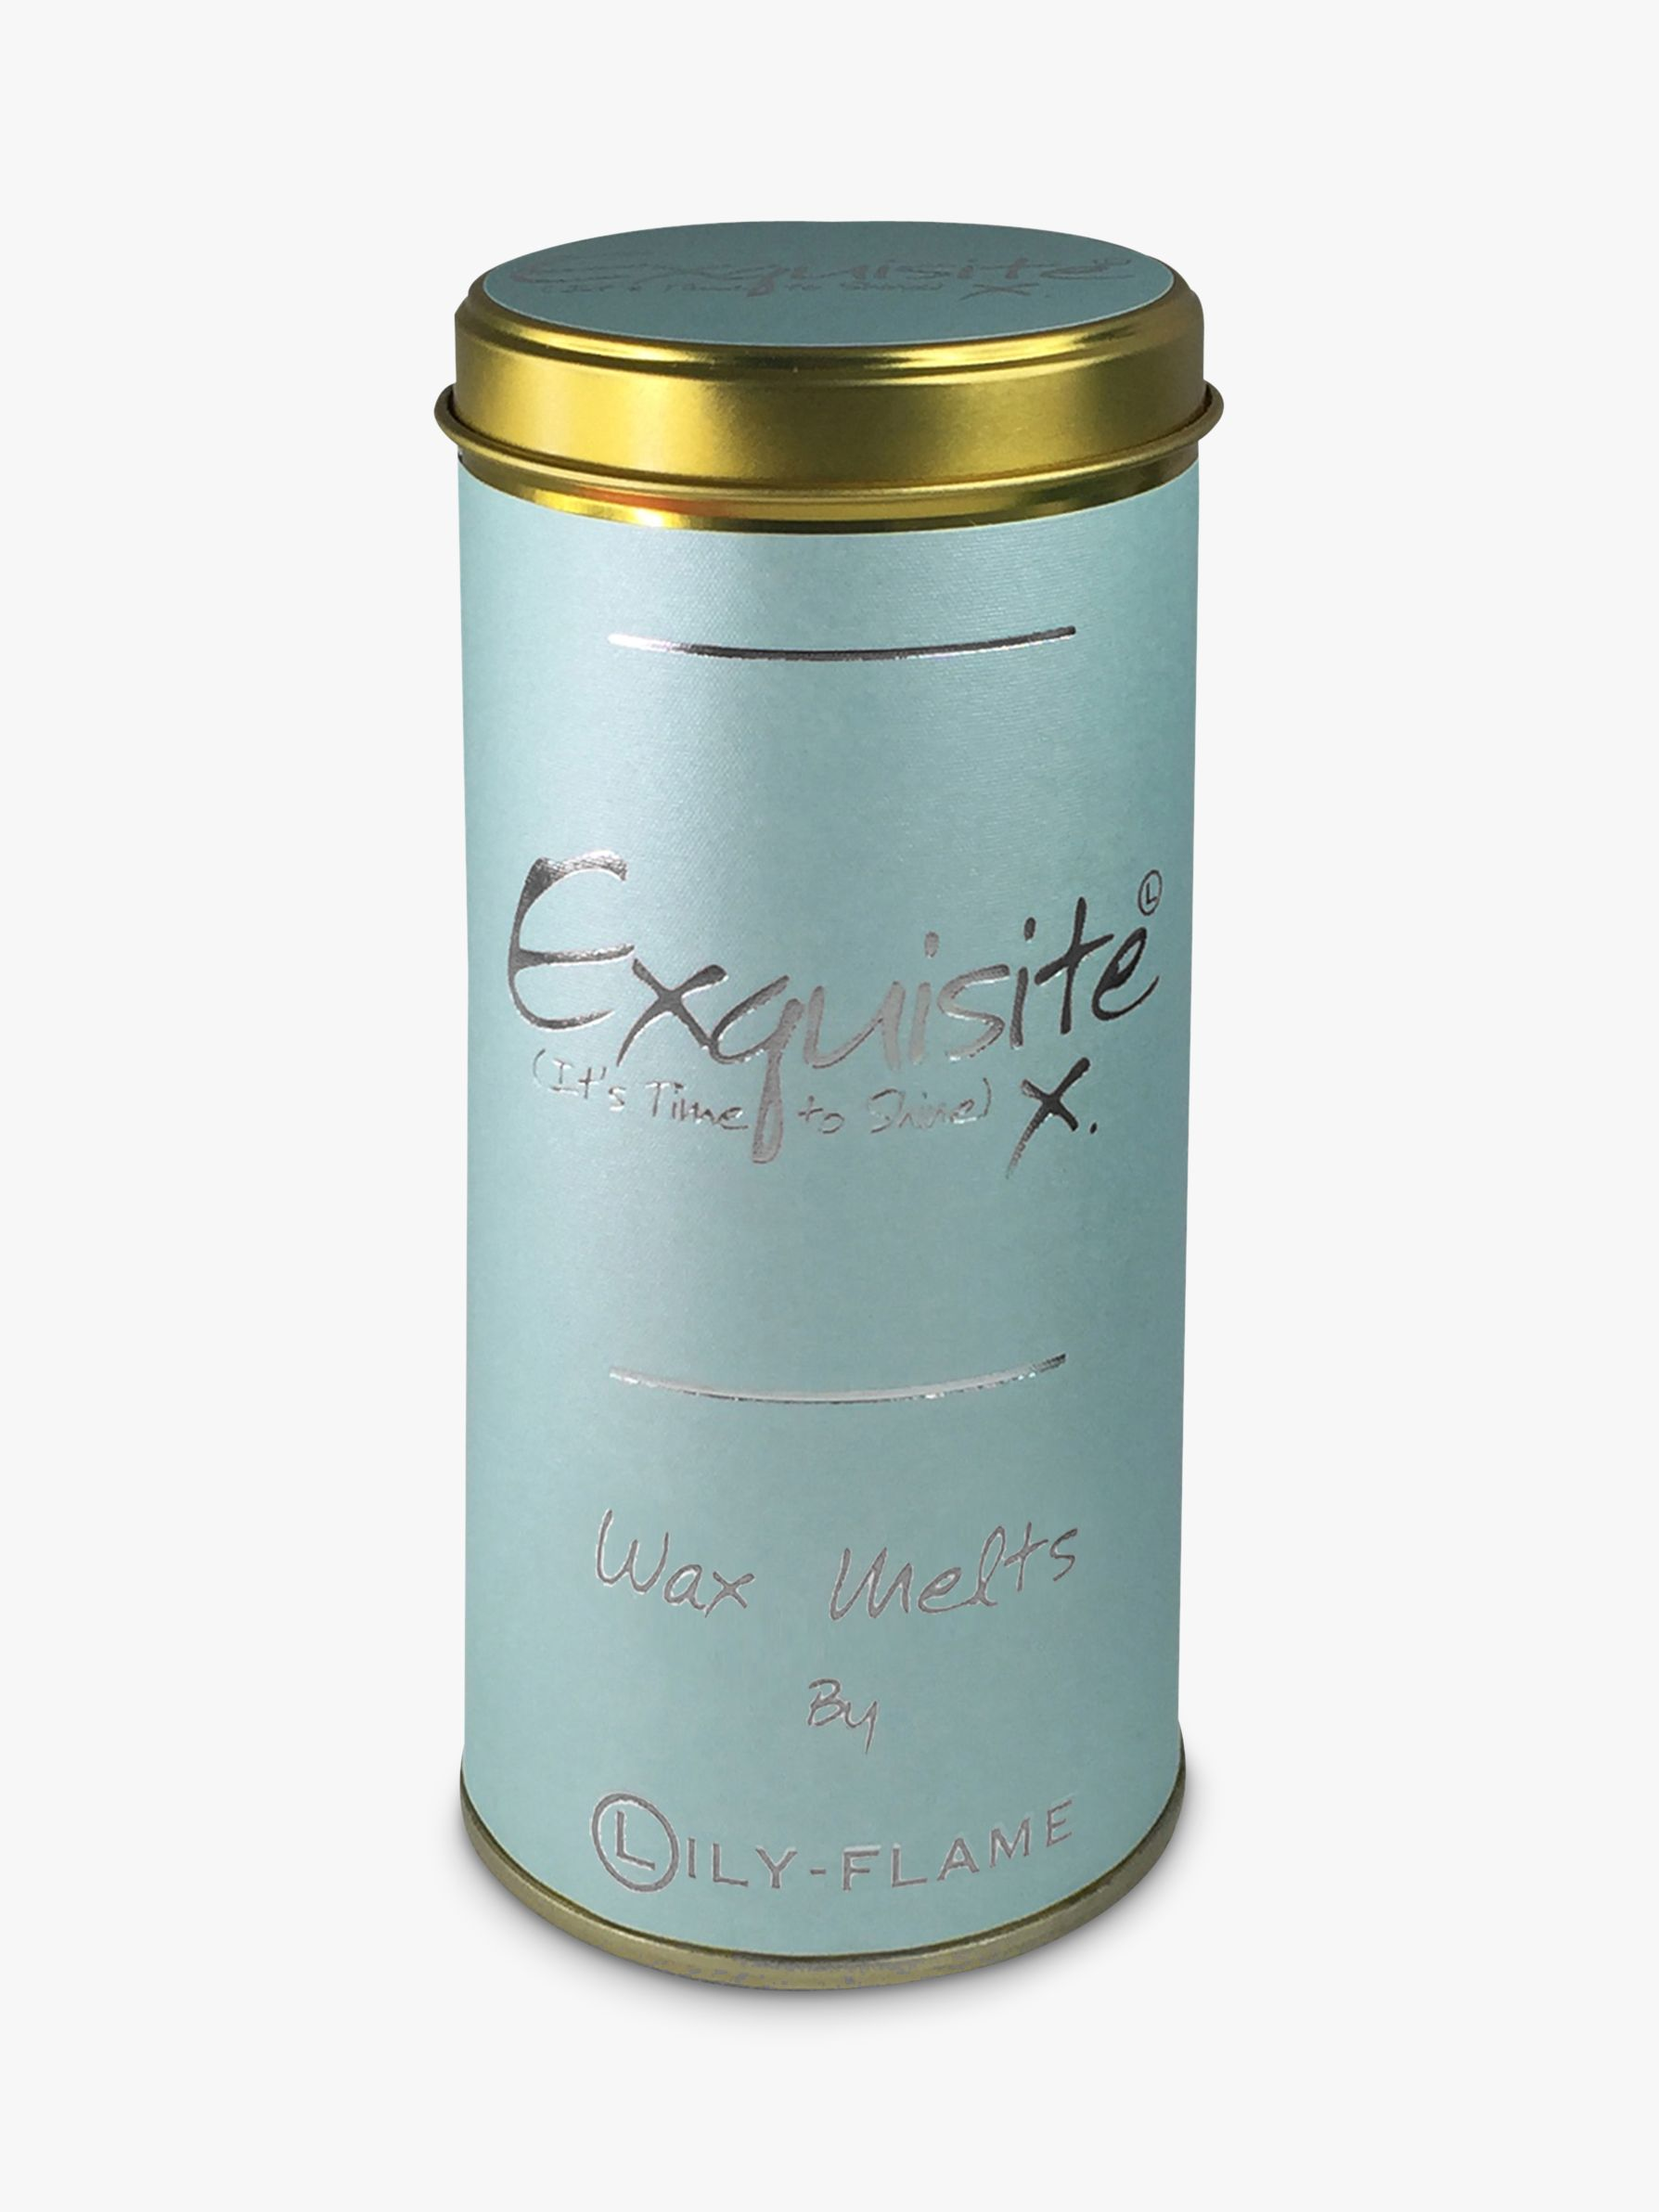 Lily-Flame Lily-Flame Exquisite Melts